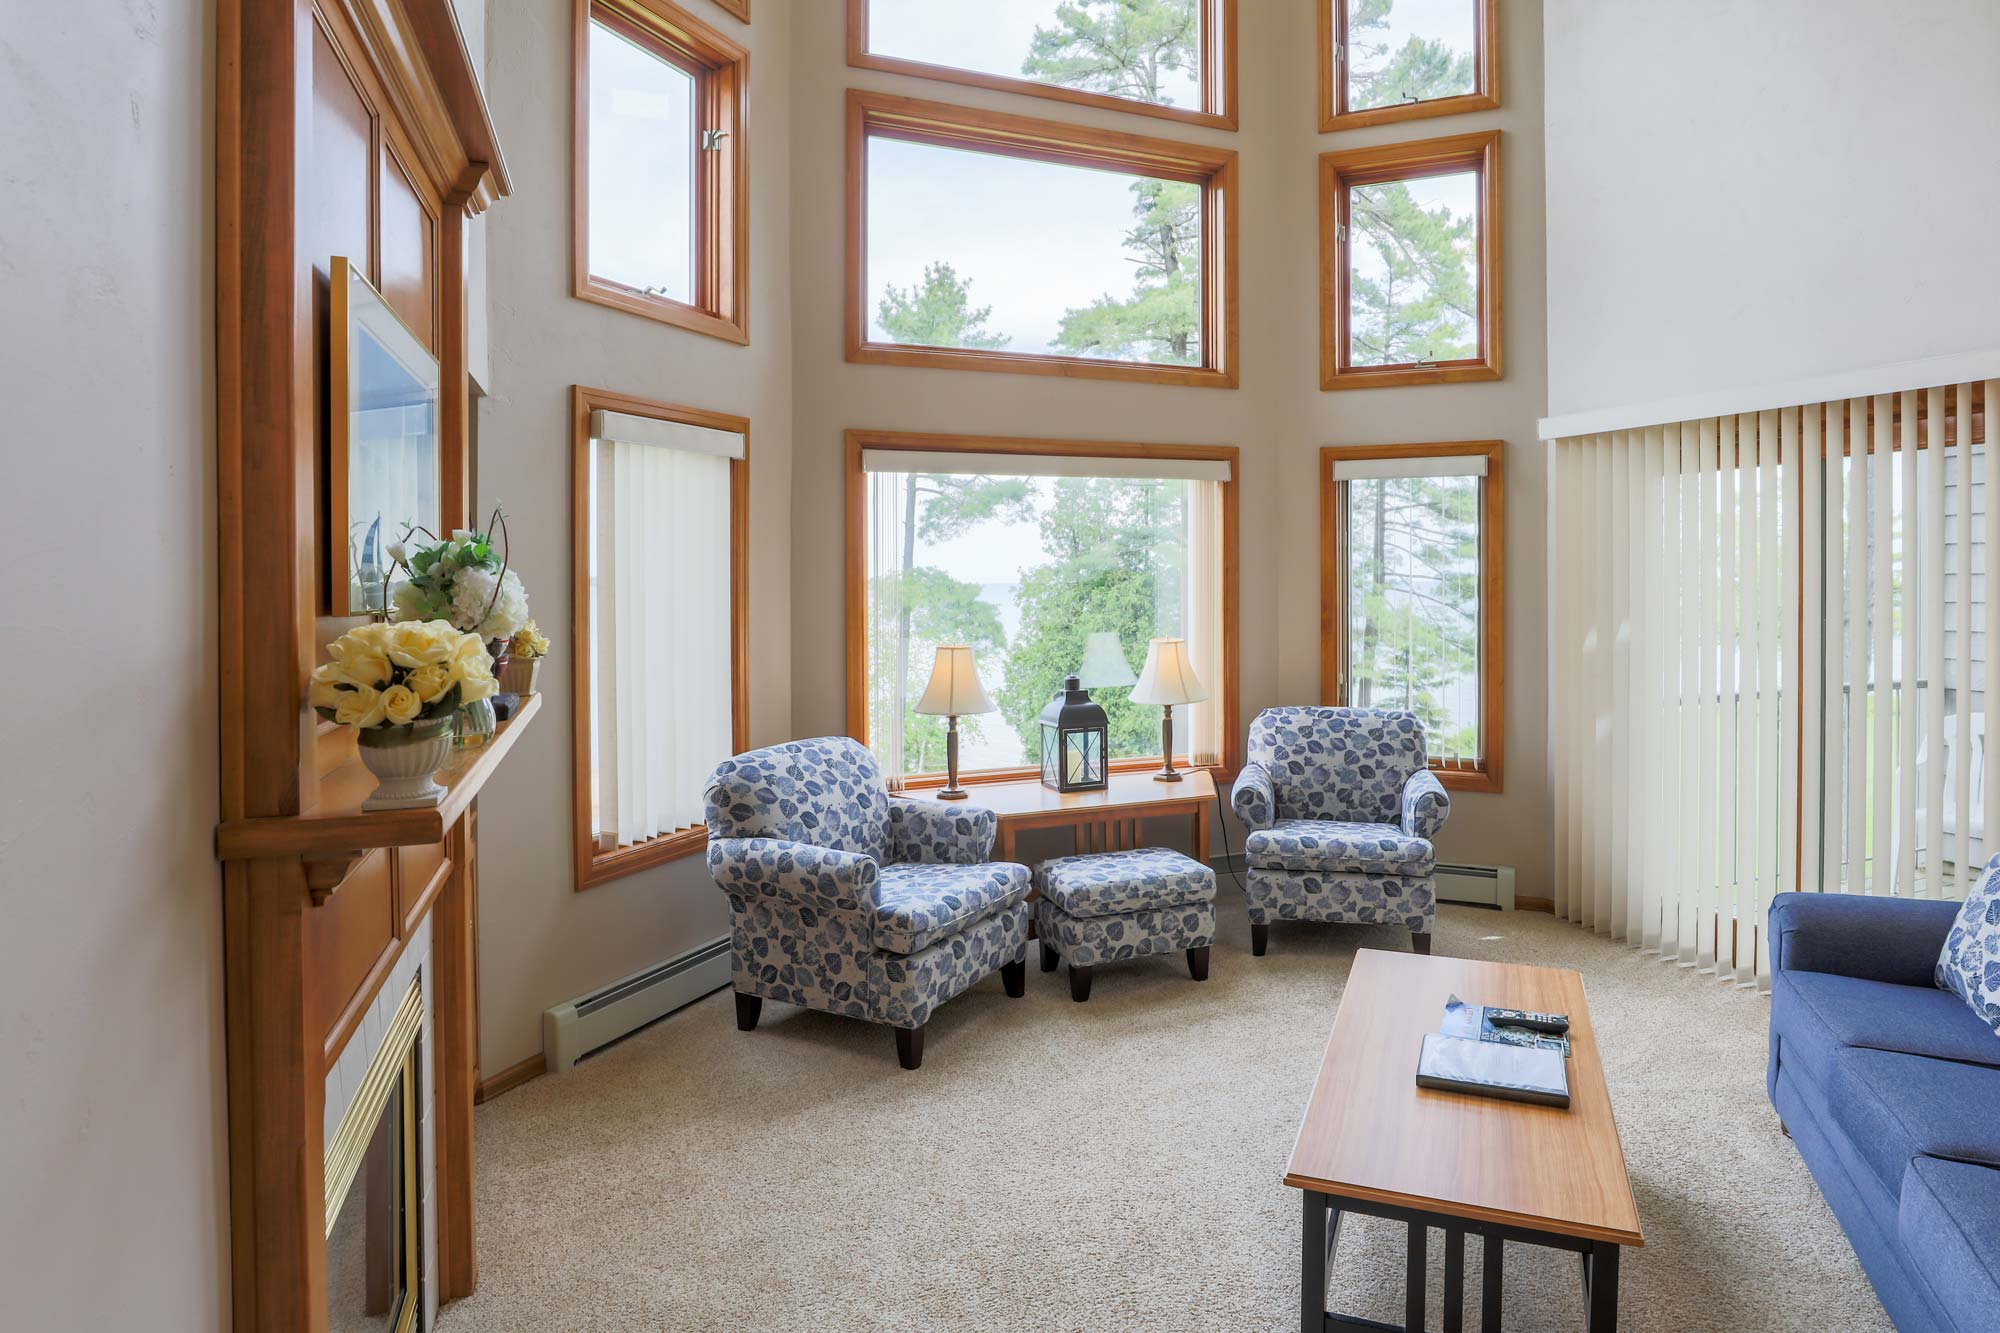 Door County Lodging and Resort with Cathedral Ceilings